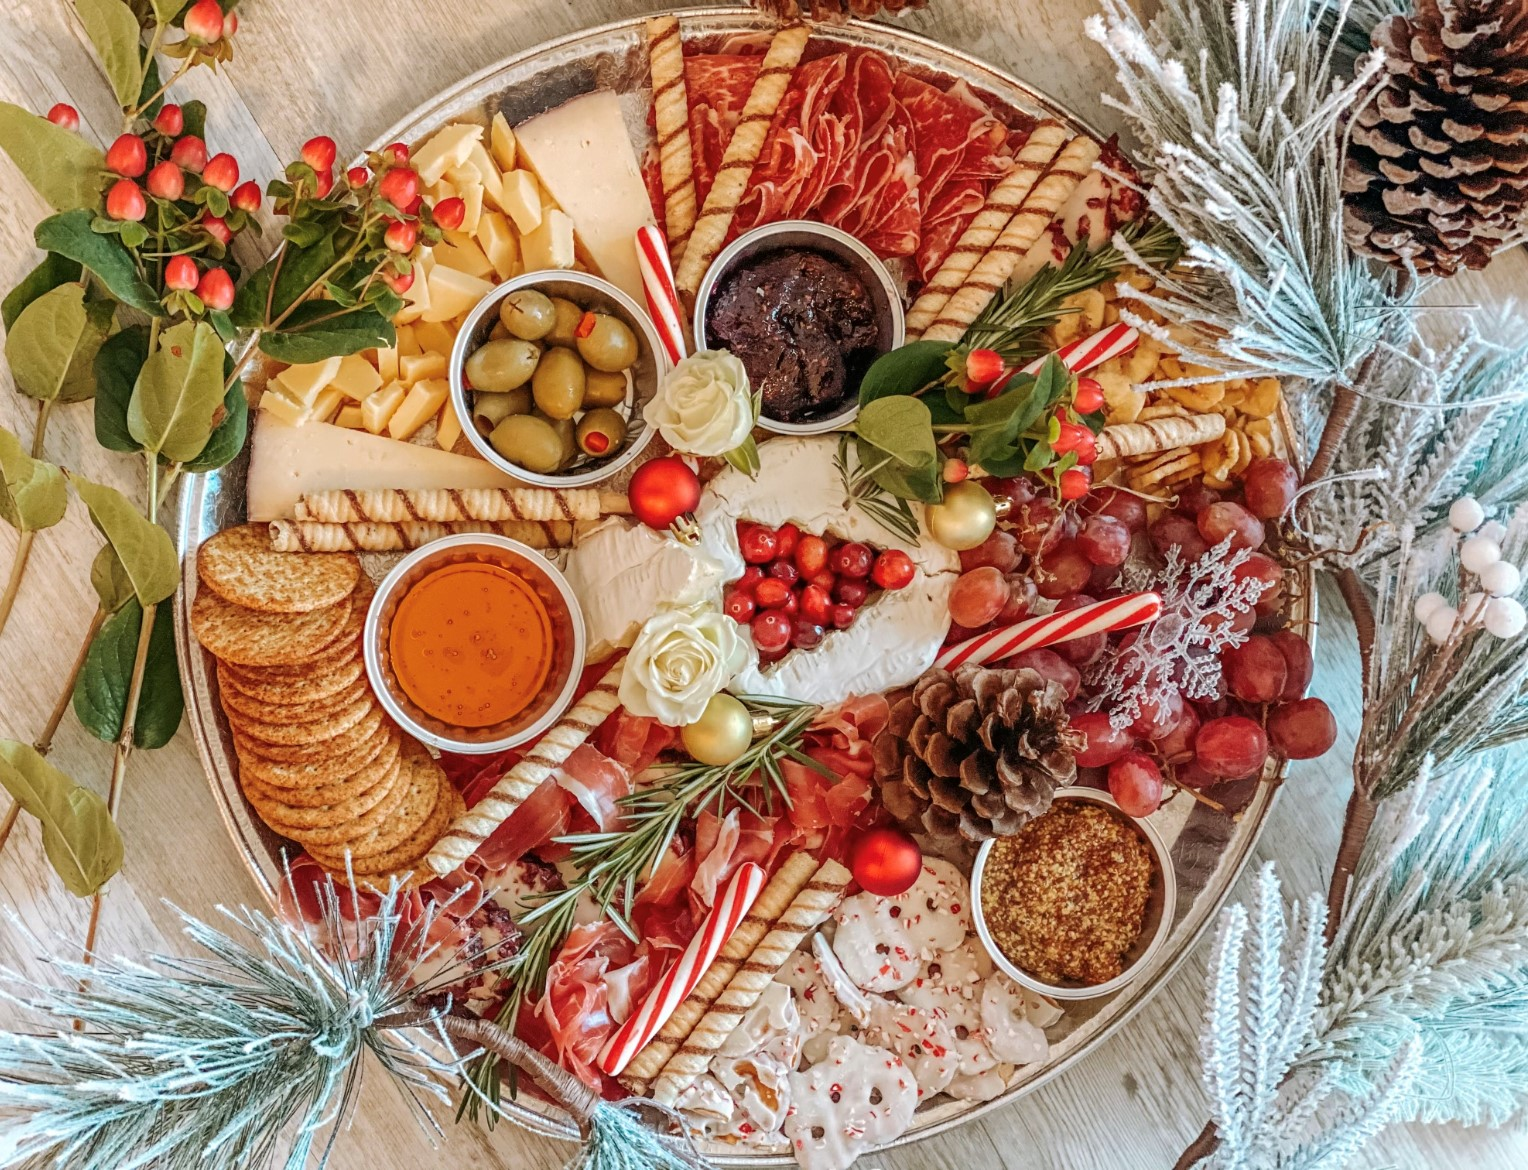 West Chester Woman Has Food Fun in a Box with Charcuterie Chic